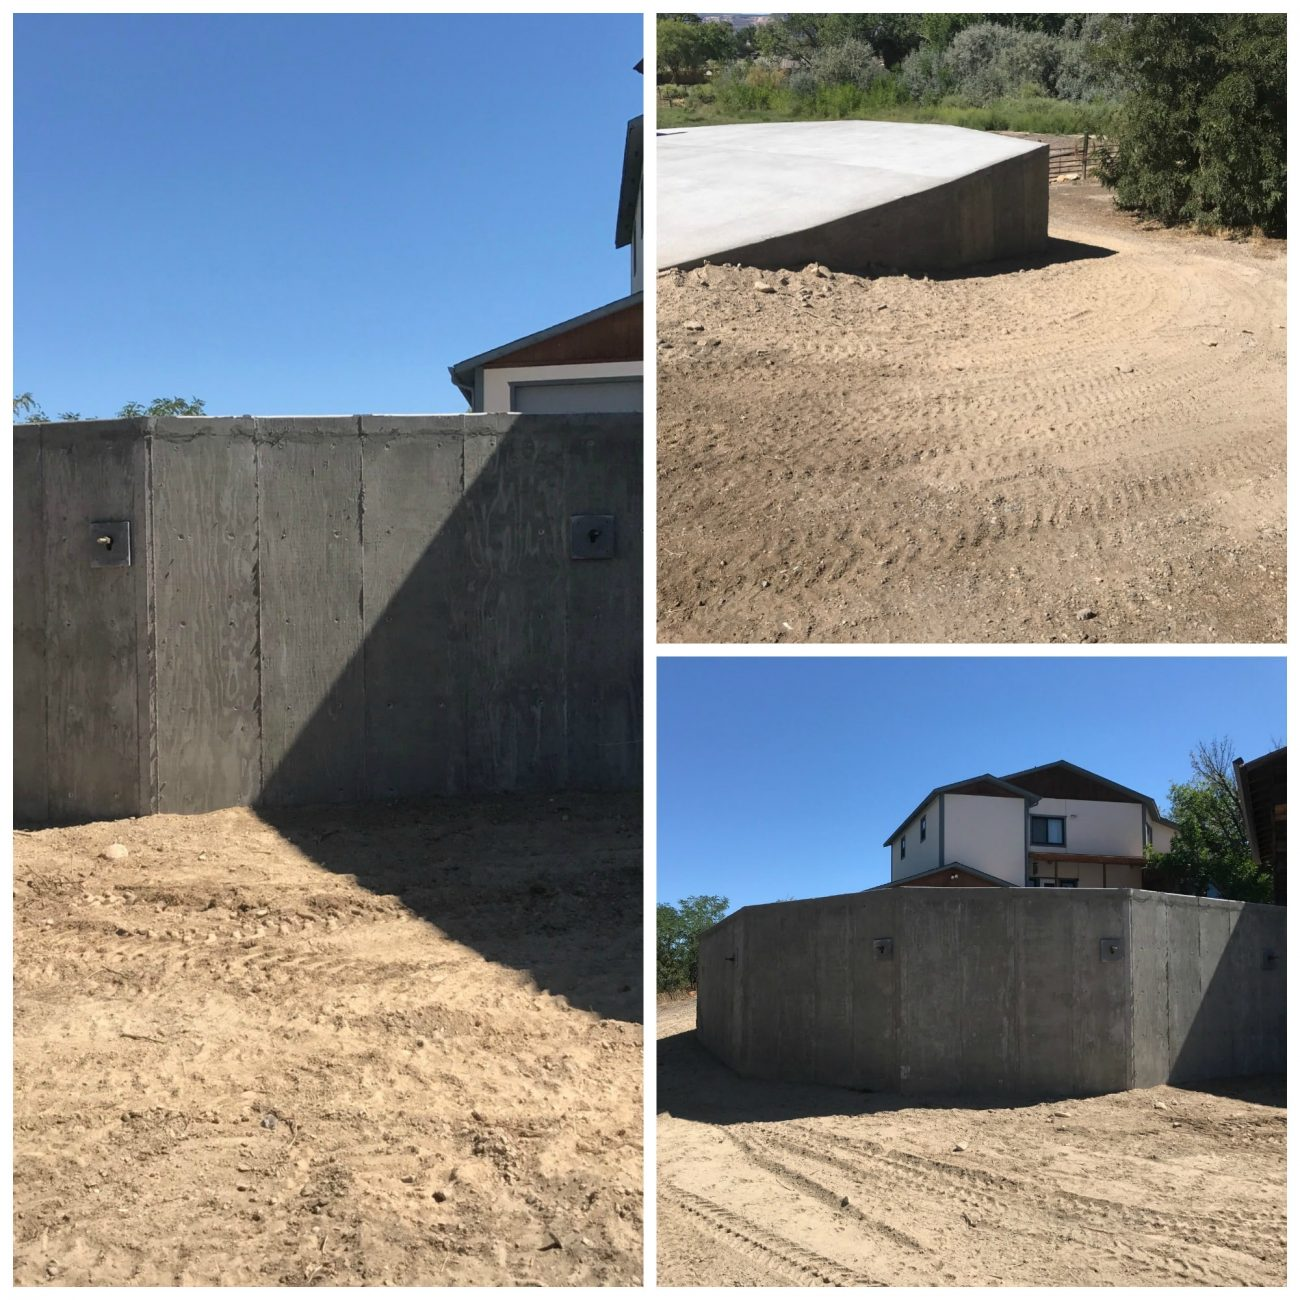 Construction of Concrete Residential Retaining Wall